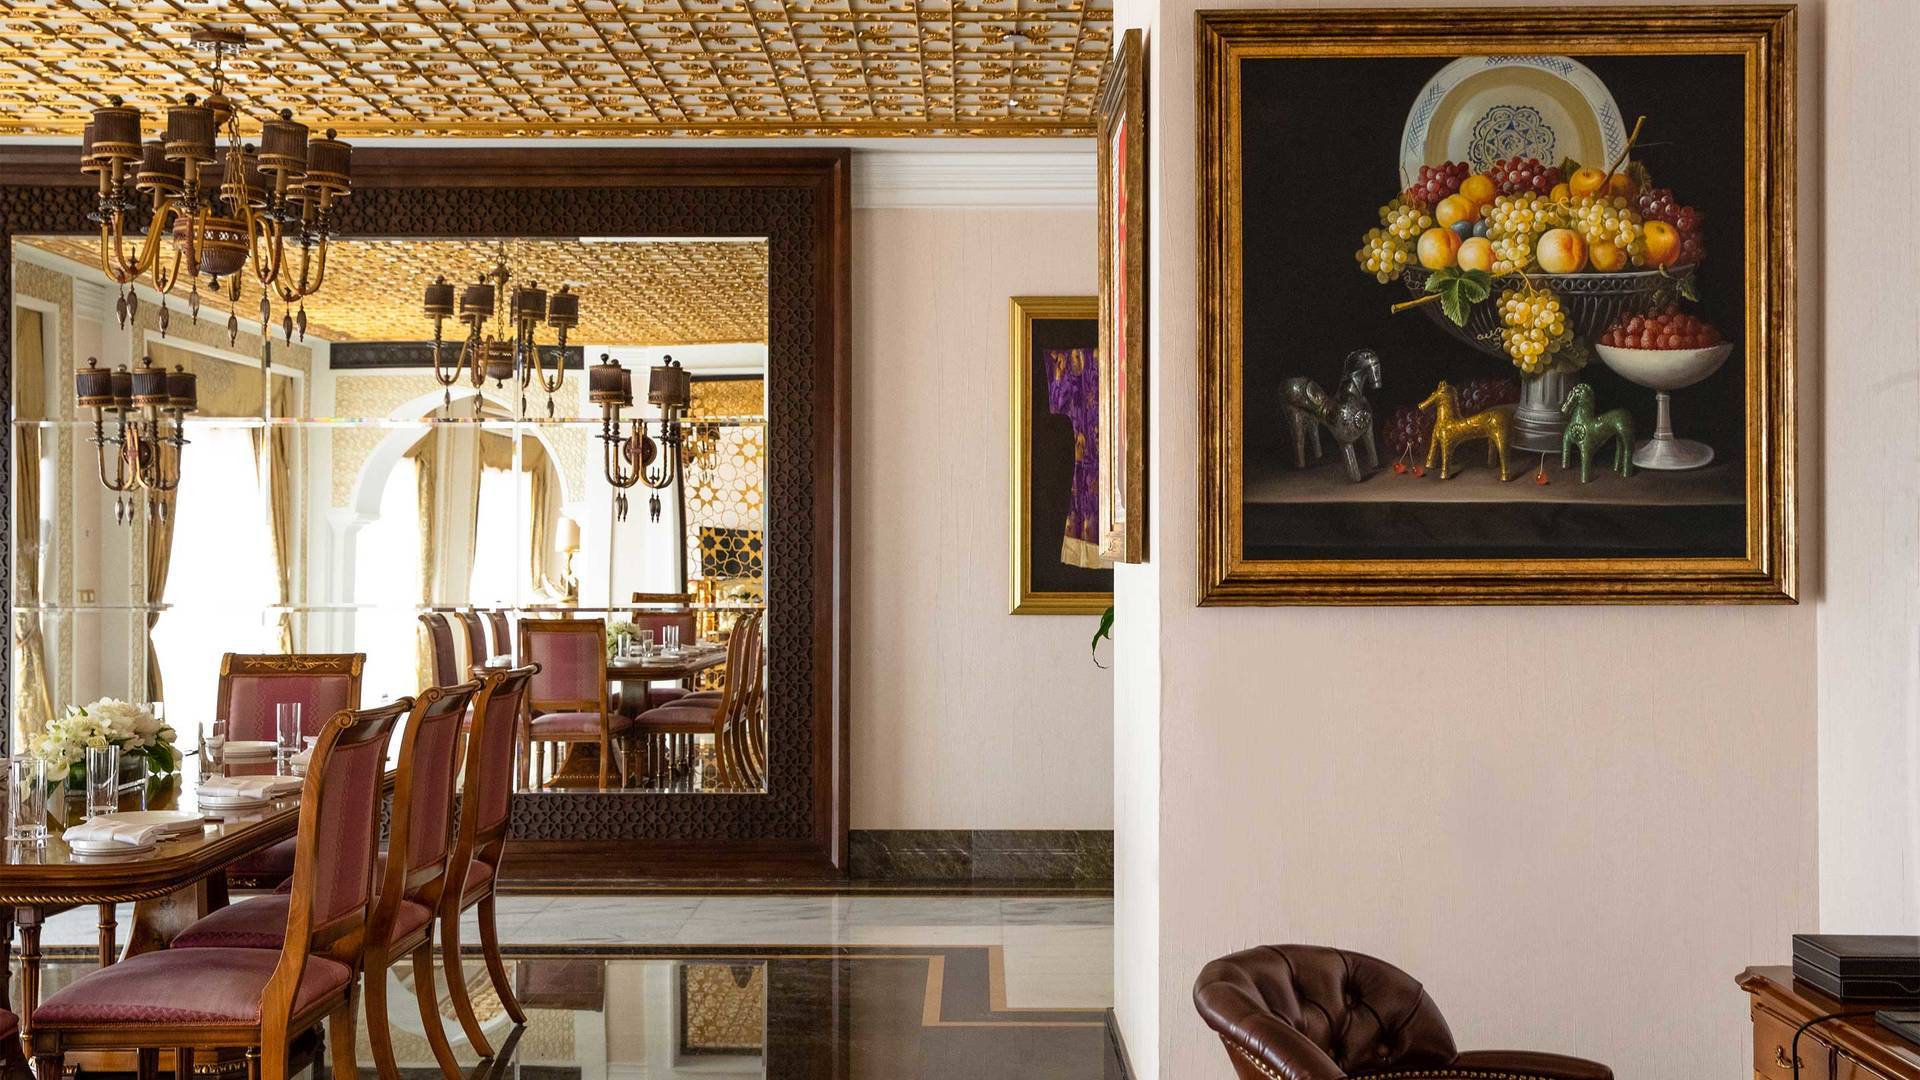 16-9_Jumeirah-Zabeel-Saray---Grand-Imperial-Suite---Dining-Area-Detail-2